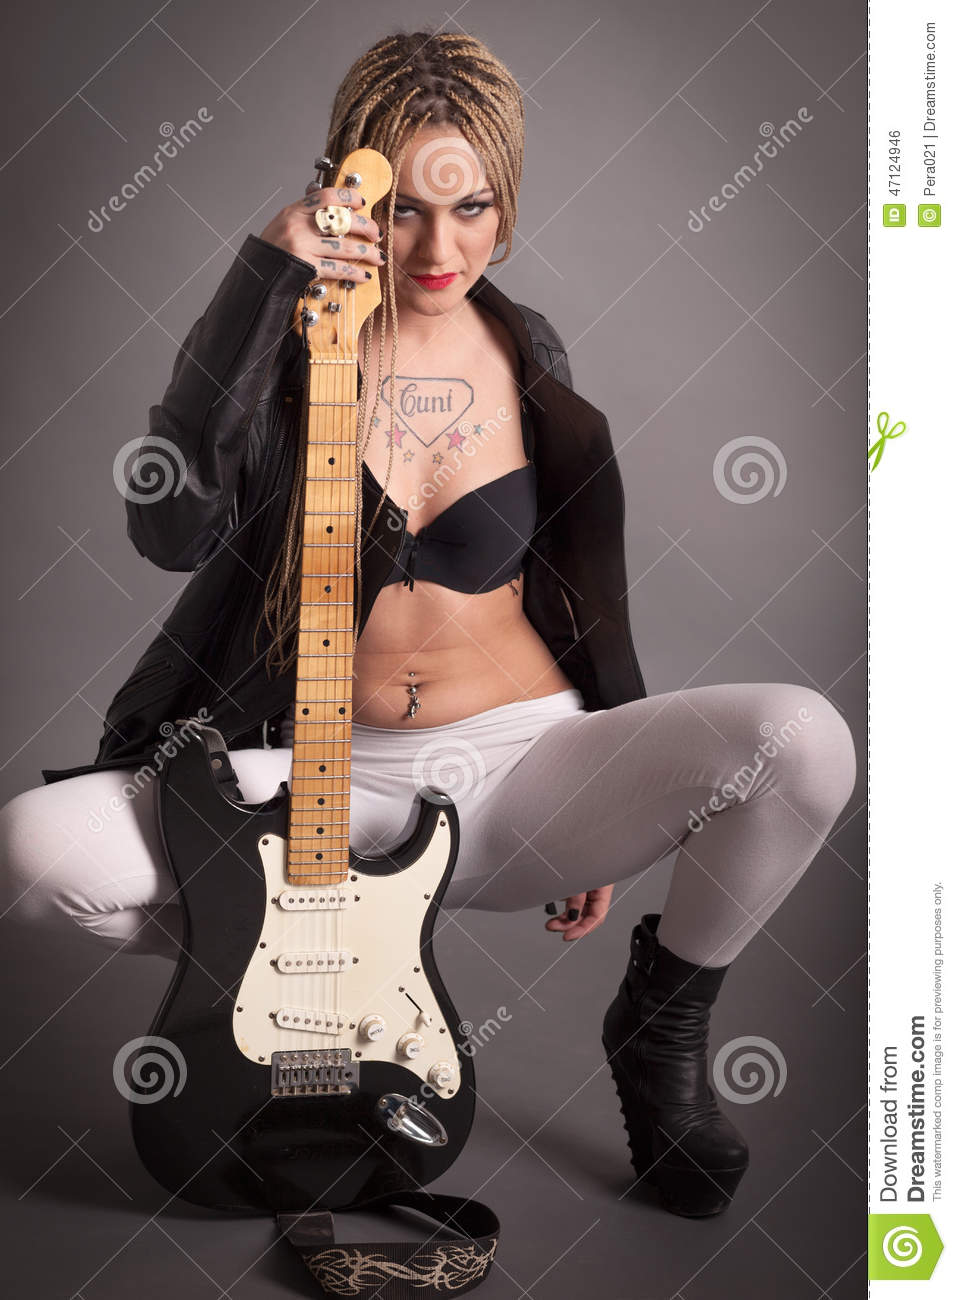 Punk Girl With Lots Of Tattoos And Electric Guitar Stock